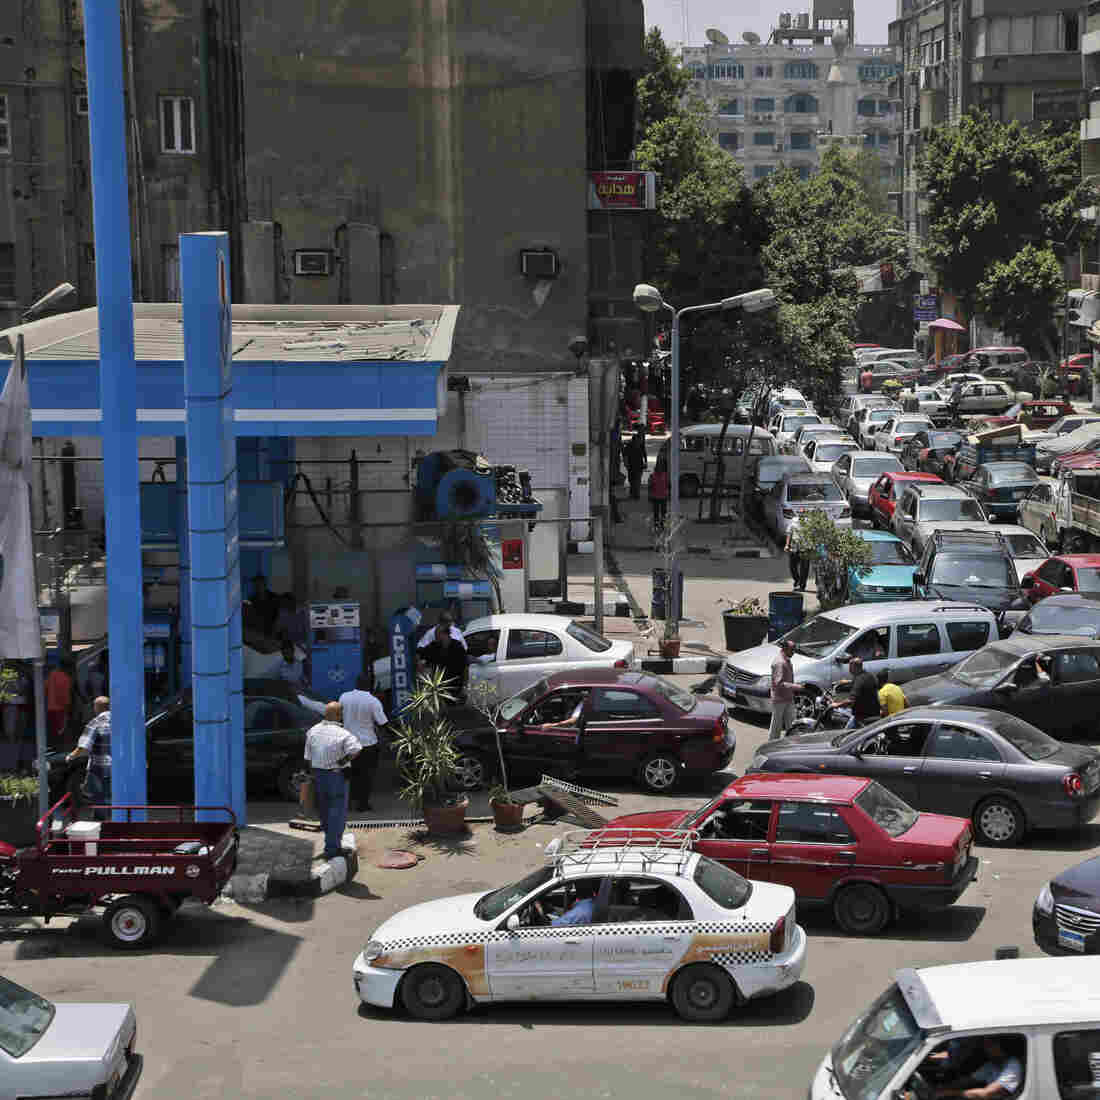 Egyptian drivers wait in long lines outside a gas station in Cairo on June 26. Along with a stuttering economy, traffic-clogging street protests and a crime wave, fuel shortages have come to symbolize the disorder of the post-Mubarak Egypt.